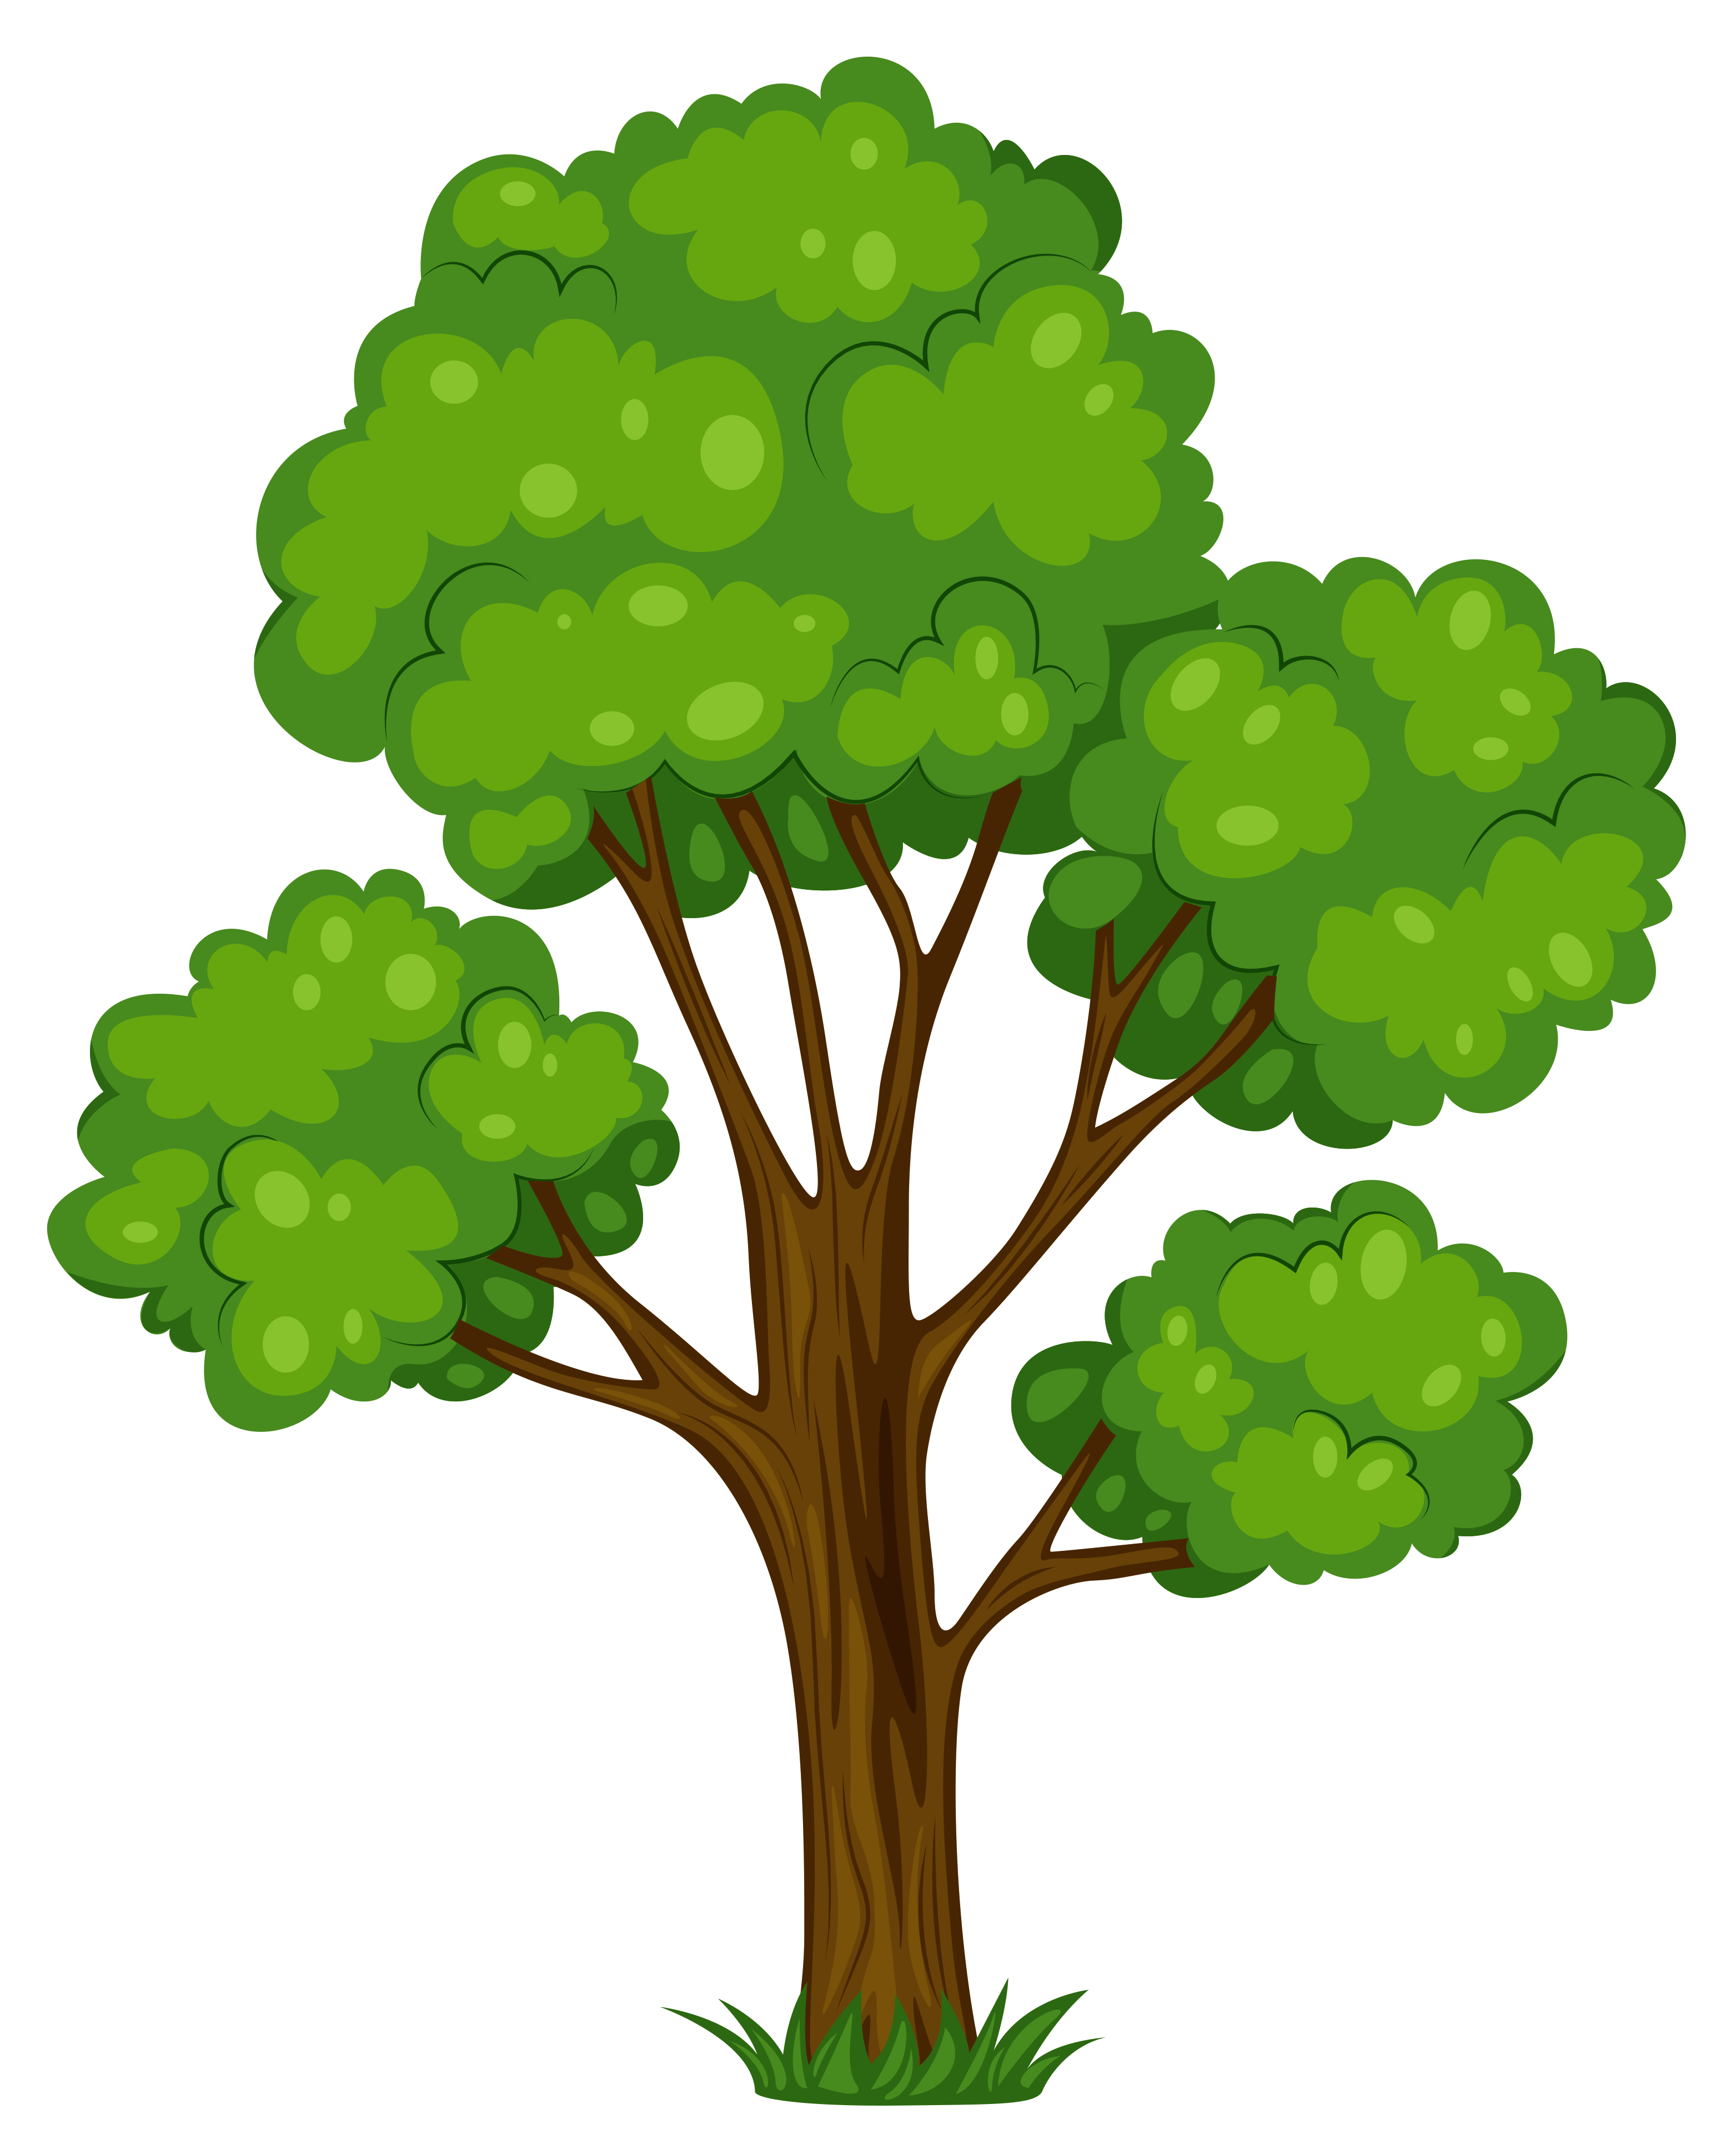 Tree clip art tree clipart clipartcow